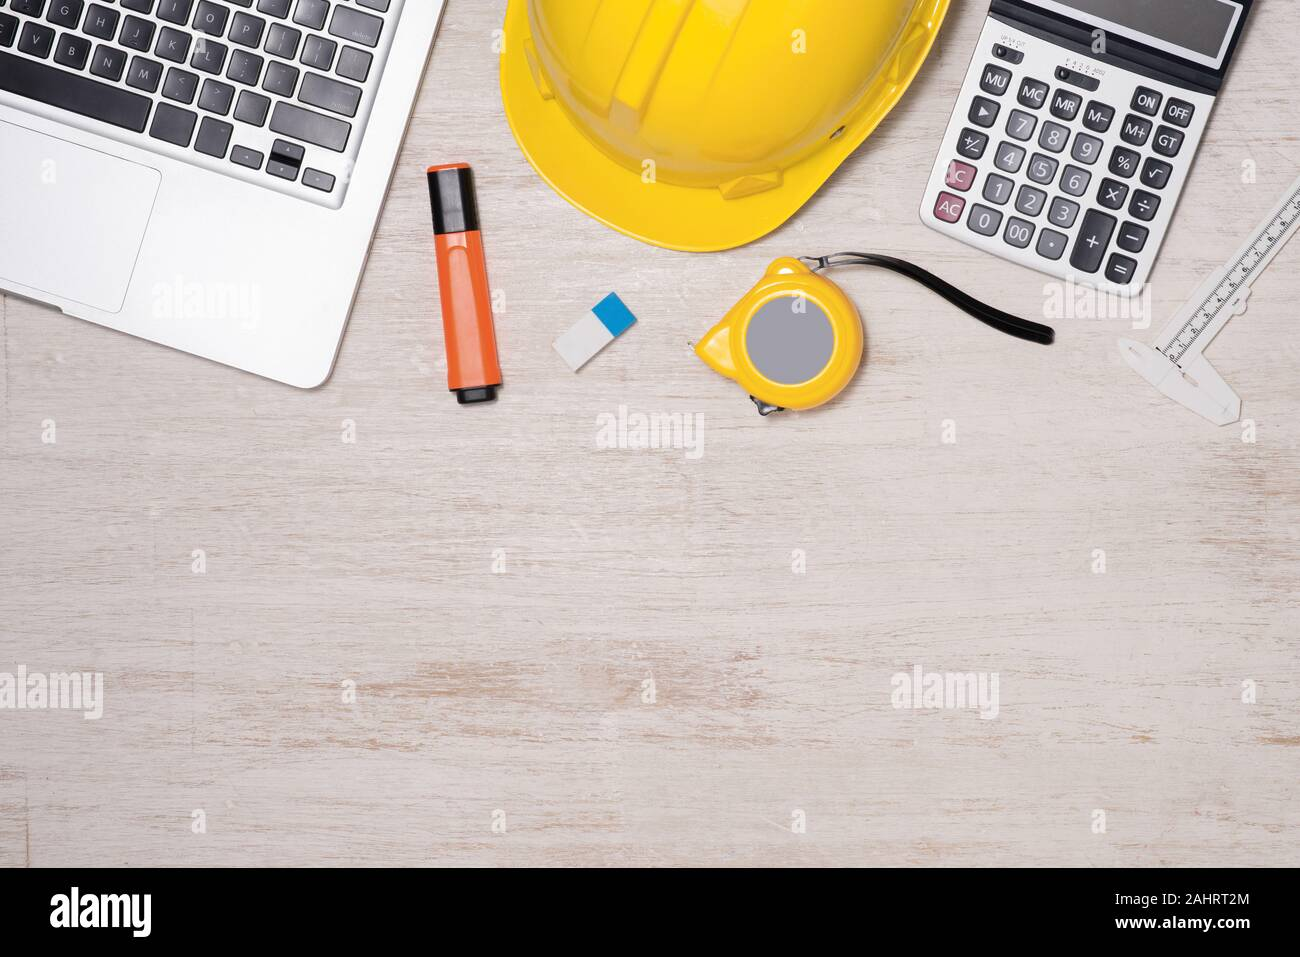 Engineer Desk Background Project Ideas Concept Stock Photo Alamy